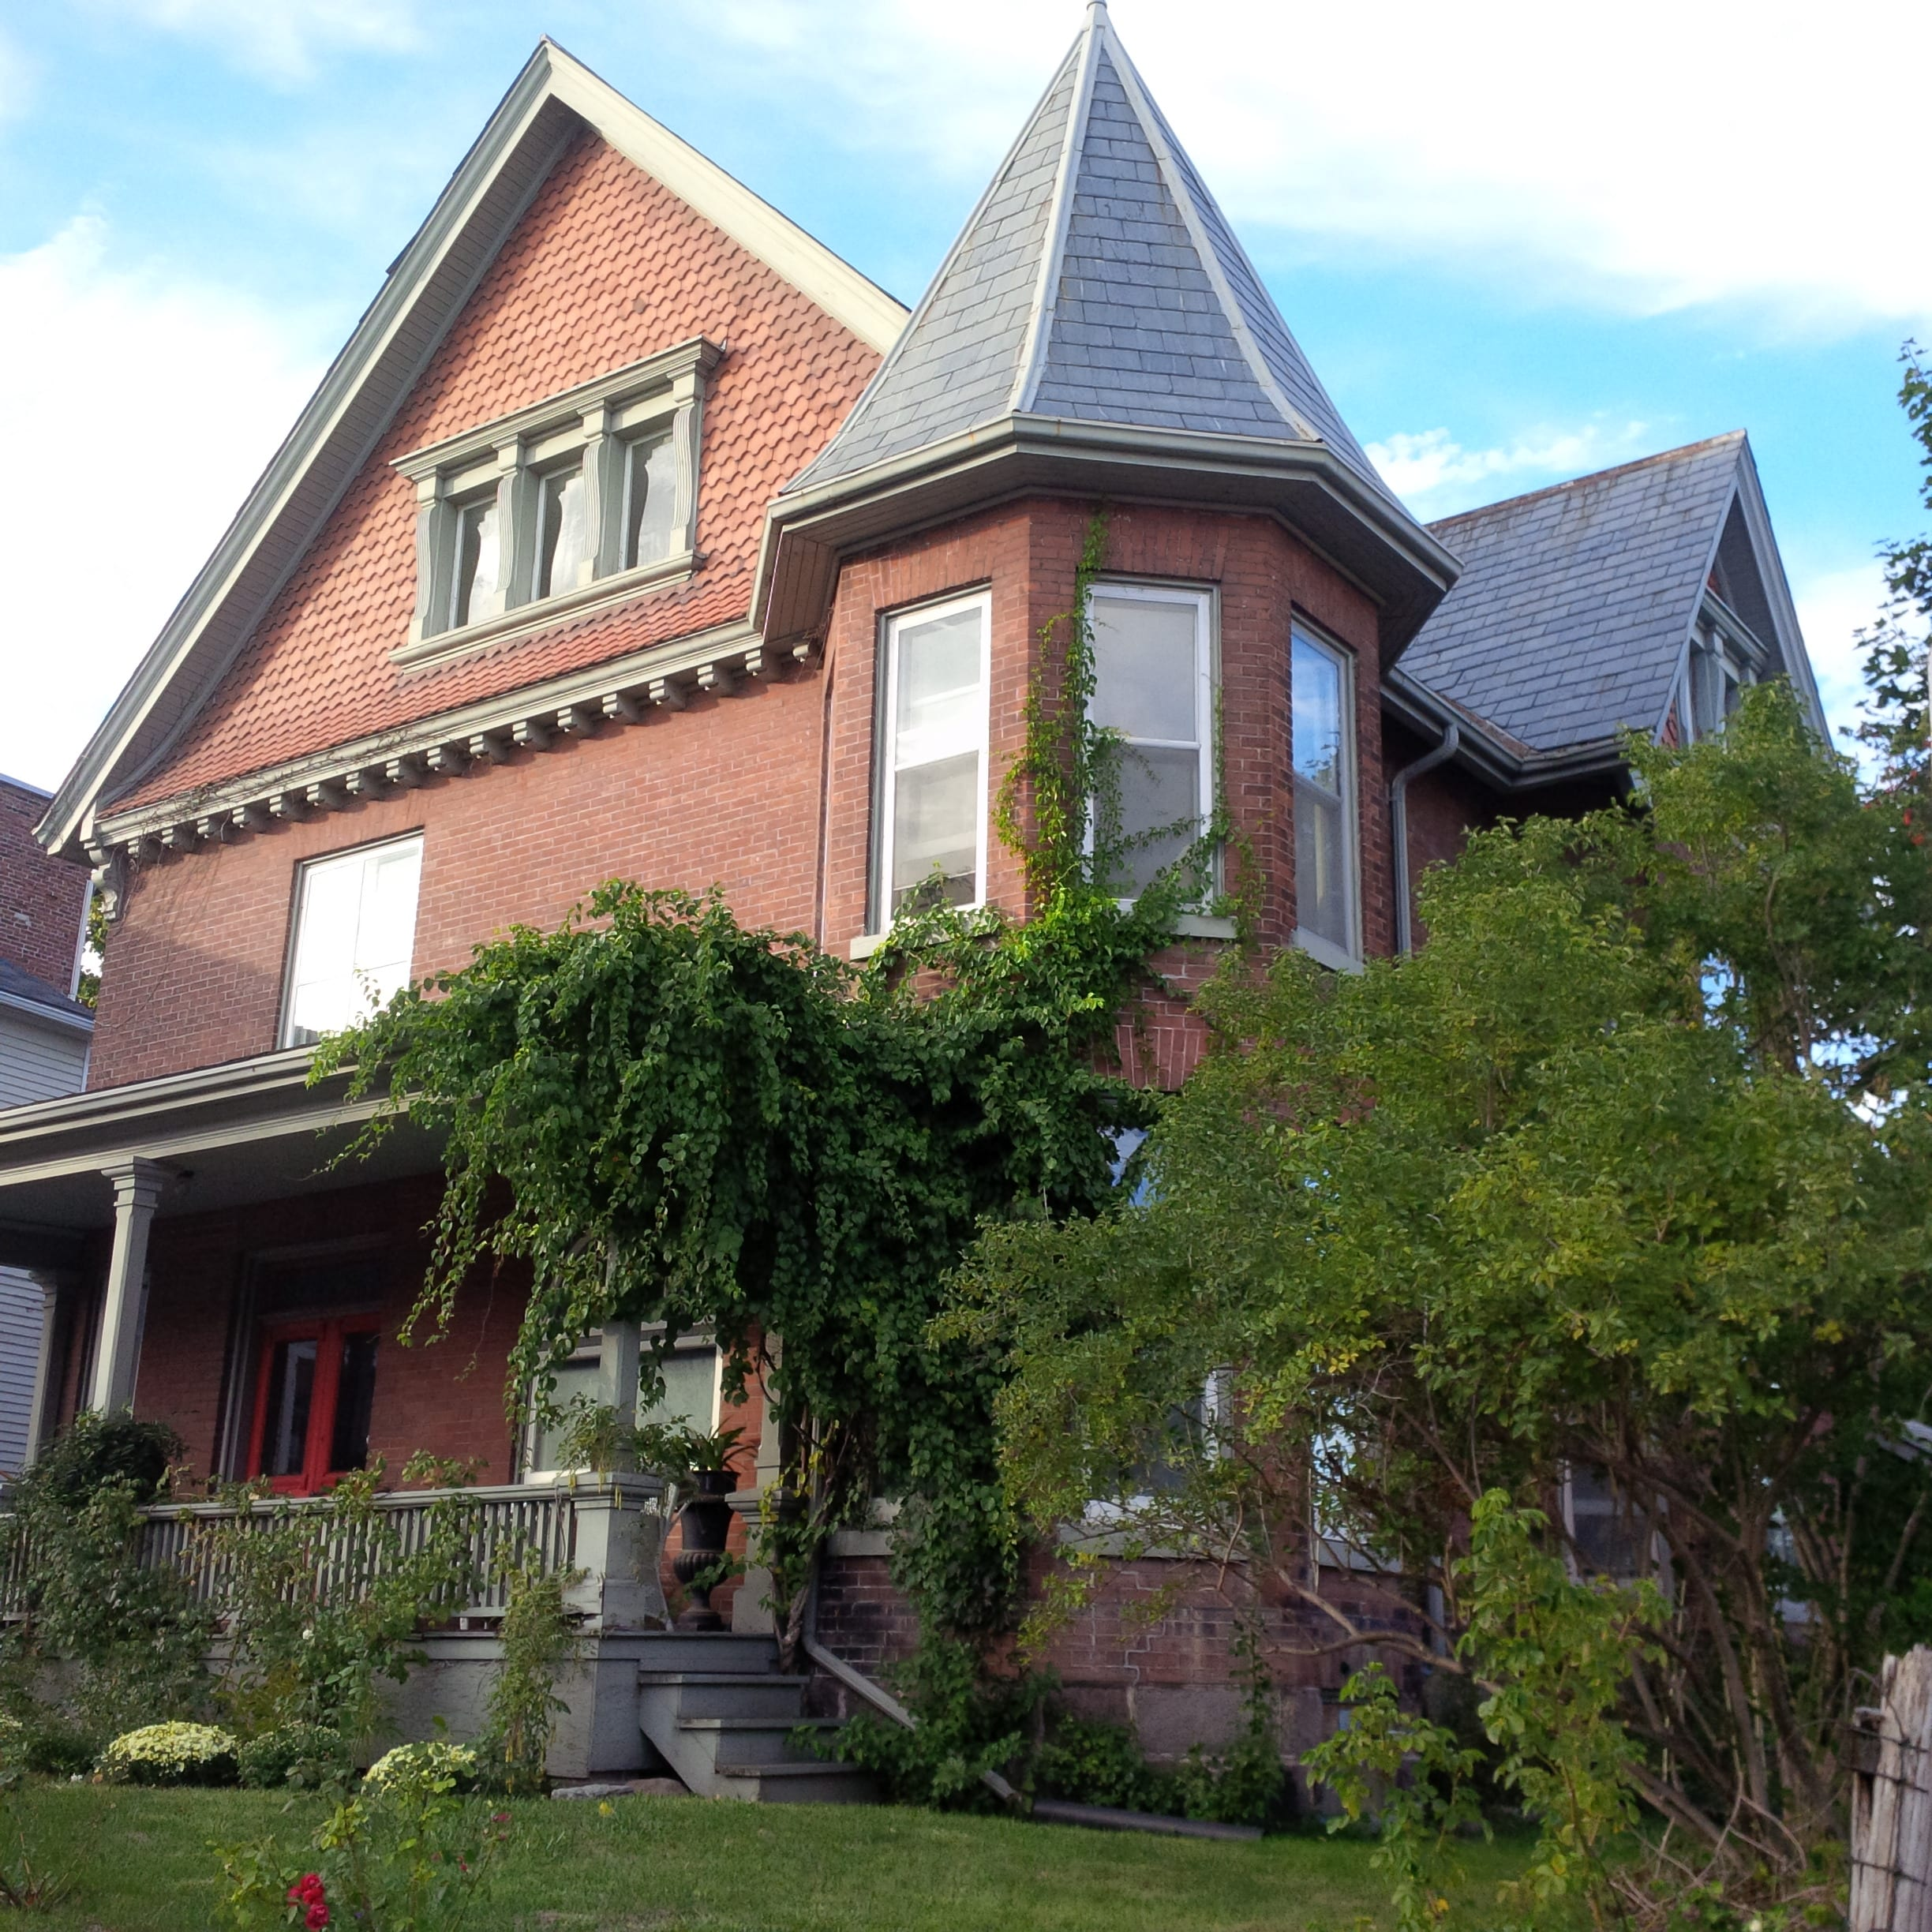 Grand Queen Anne Revival. Port Hope